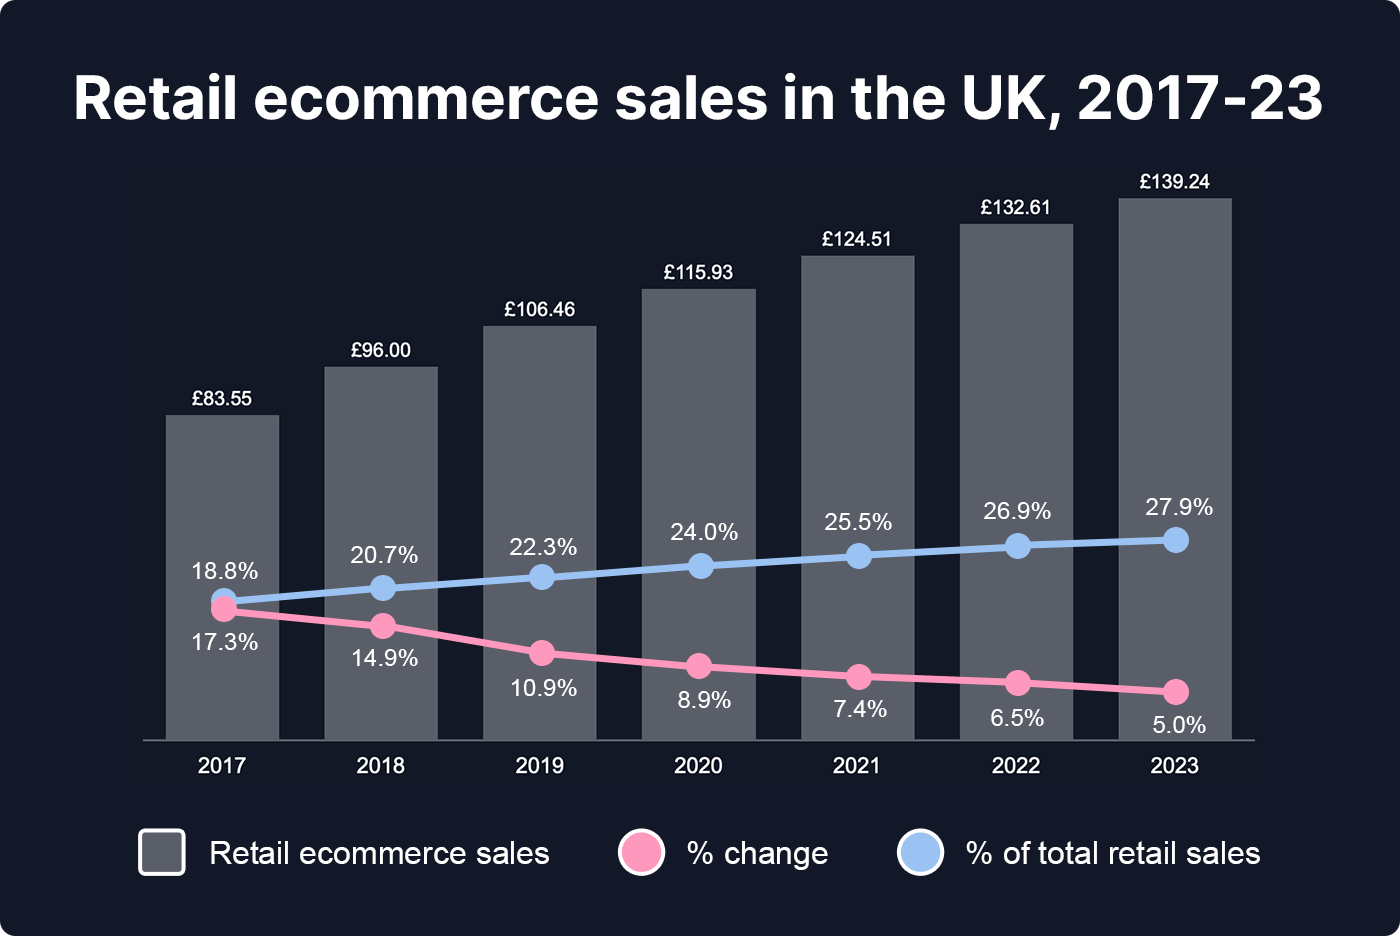 Retail ecommerce sales in the UK, 2017-23